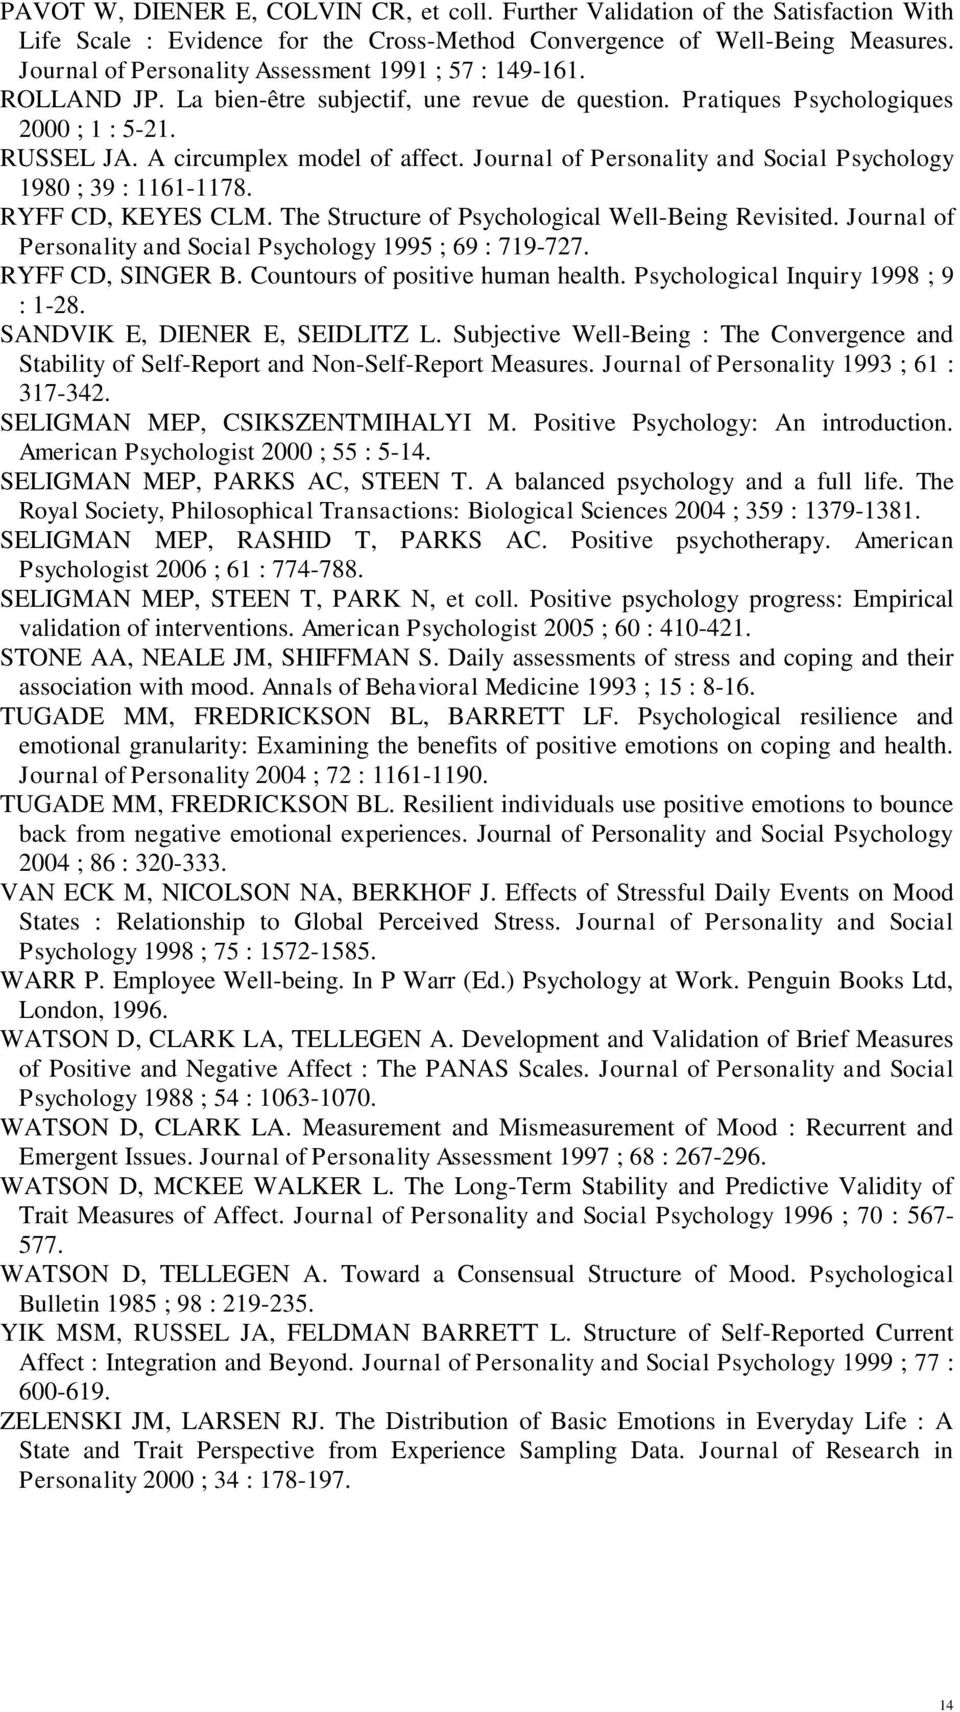 Journal of Personality and Social Psychology 1980 ; 39 : 1161-1178. RYFF CD, KEYES CLM. The Structure of Psychological Well-Being Revisited.